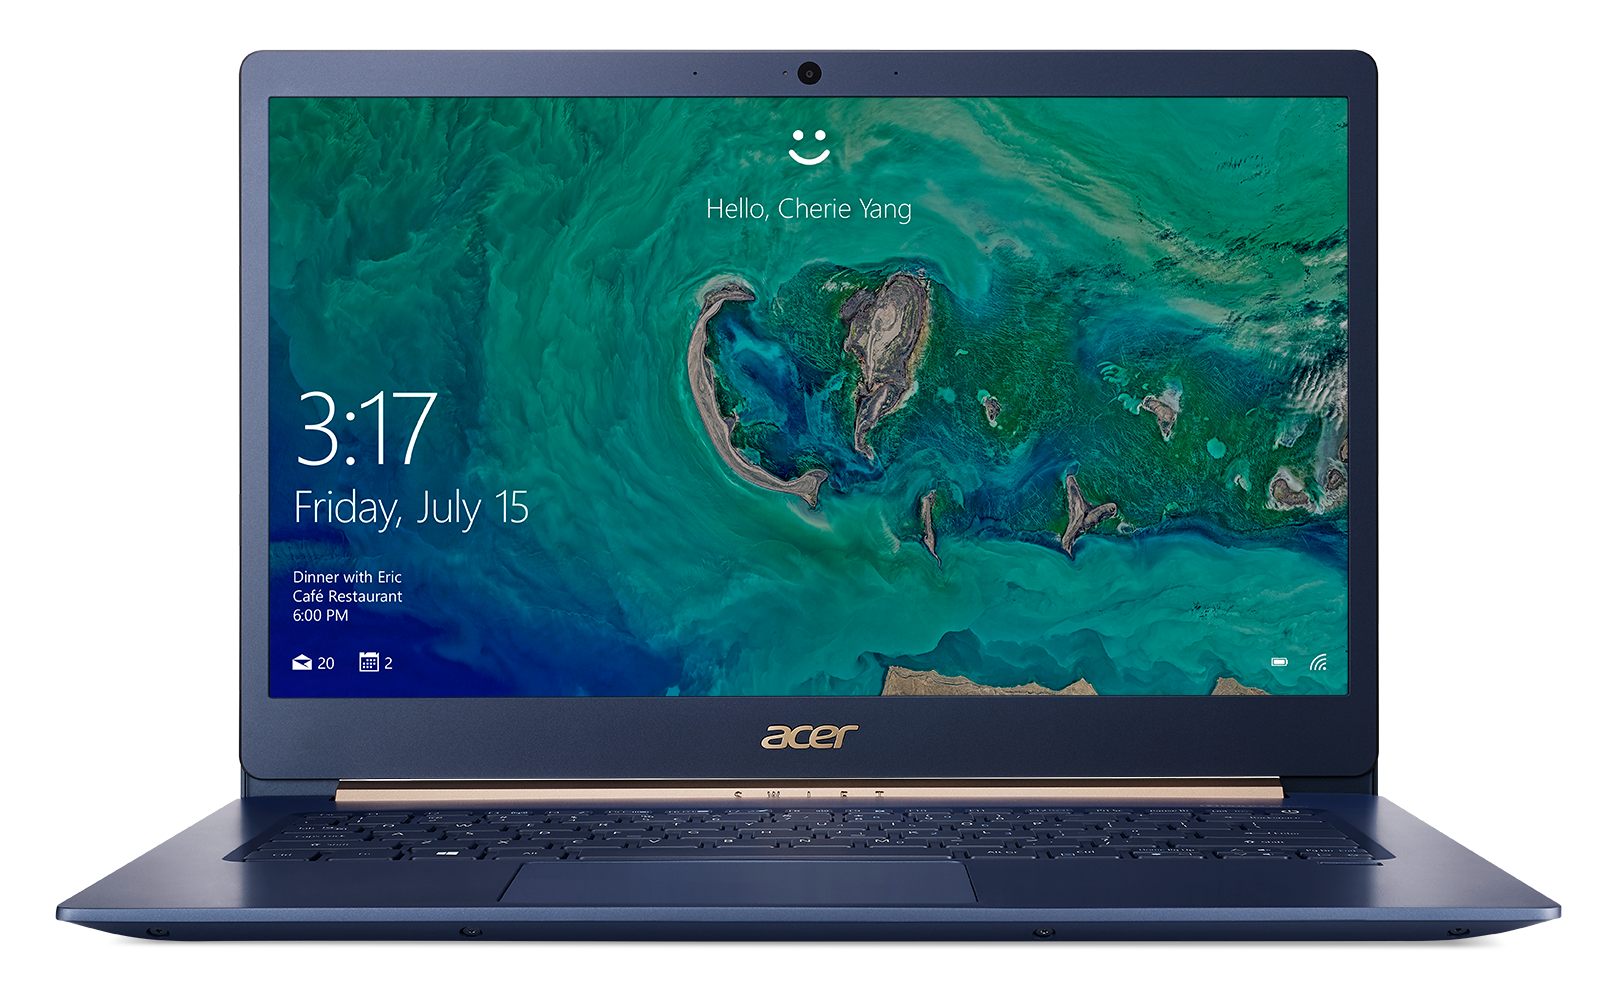 ACER TRAVELMATE 2400 %7D DOWNLOAD DRIVERS